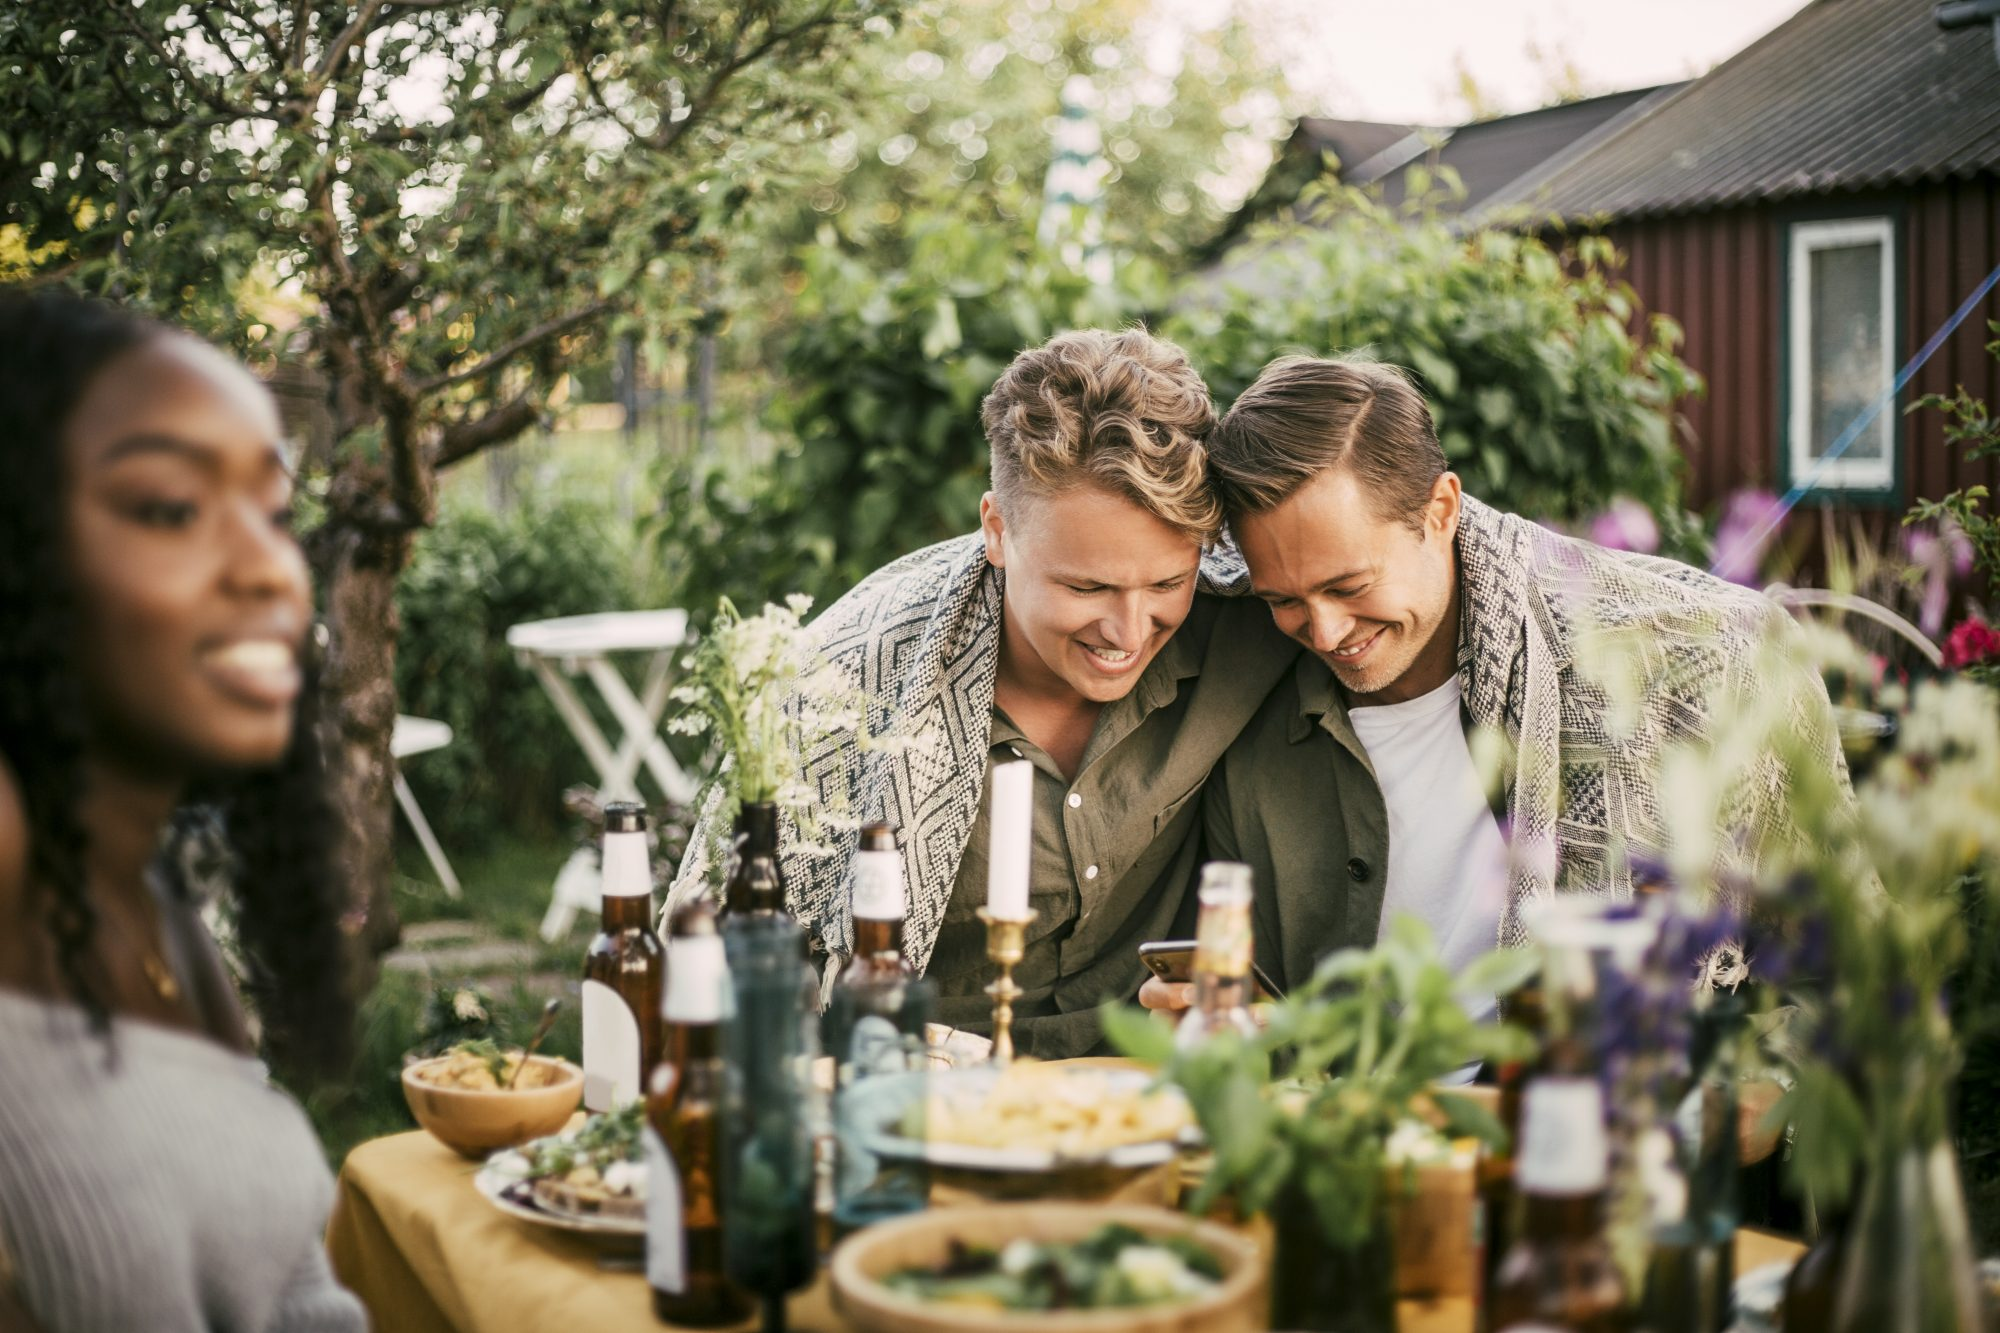 couple at outdoor dinner party with friends